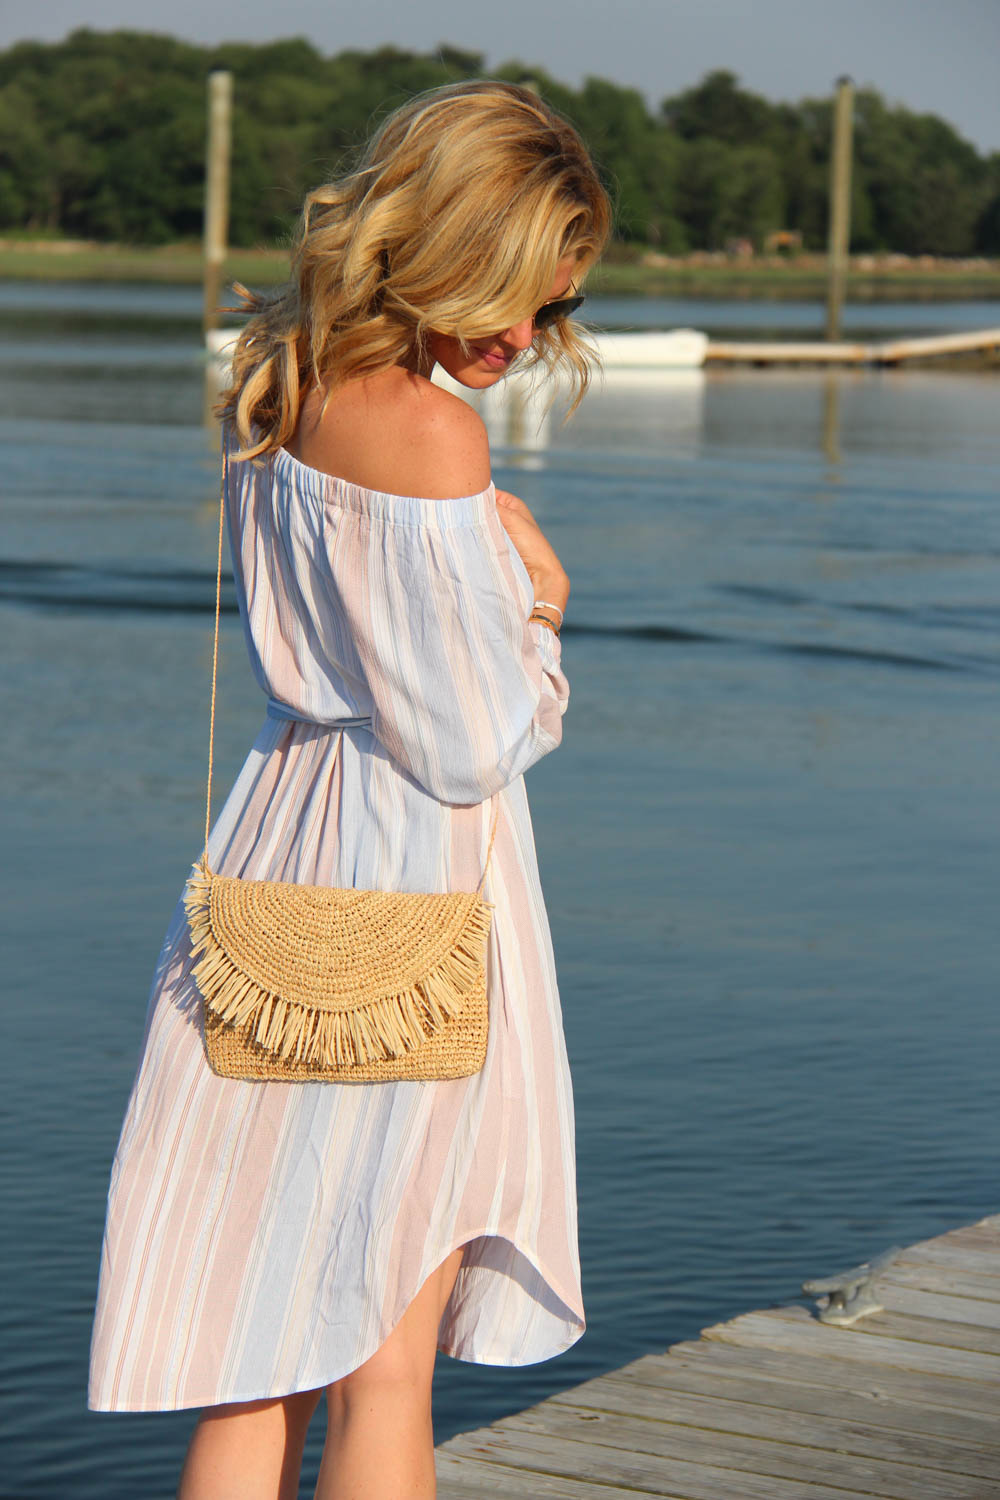 AG MICHELLE OFF-SHOULDER STRIPED DRESS | $198  HAT ATTACK SUNSHINE CLUTCH | $94